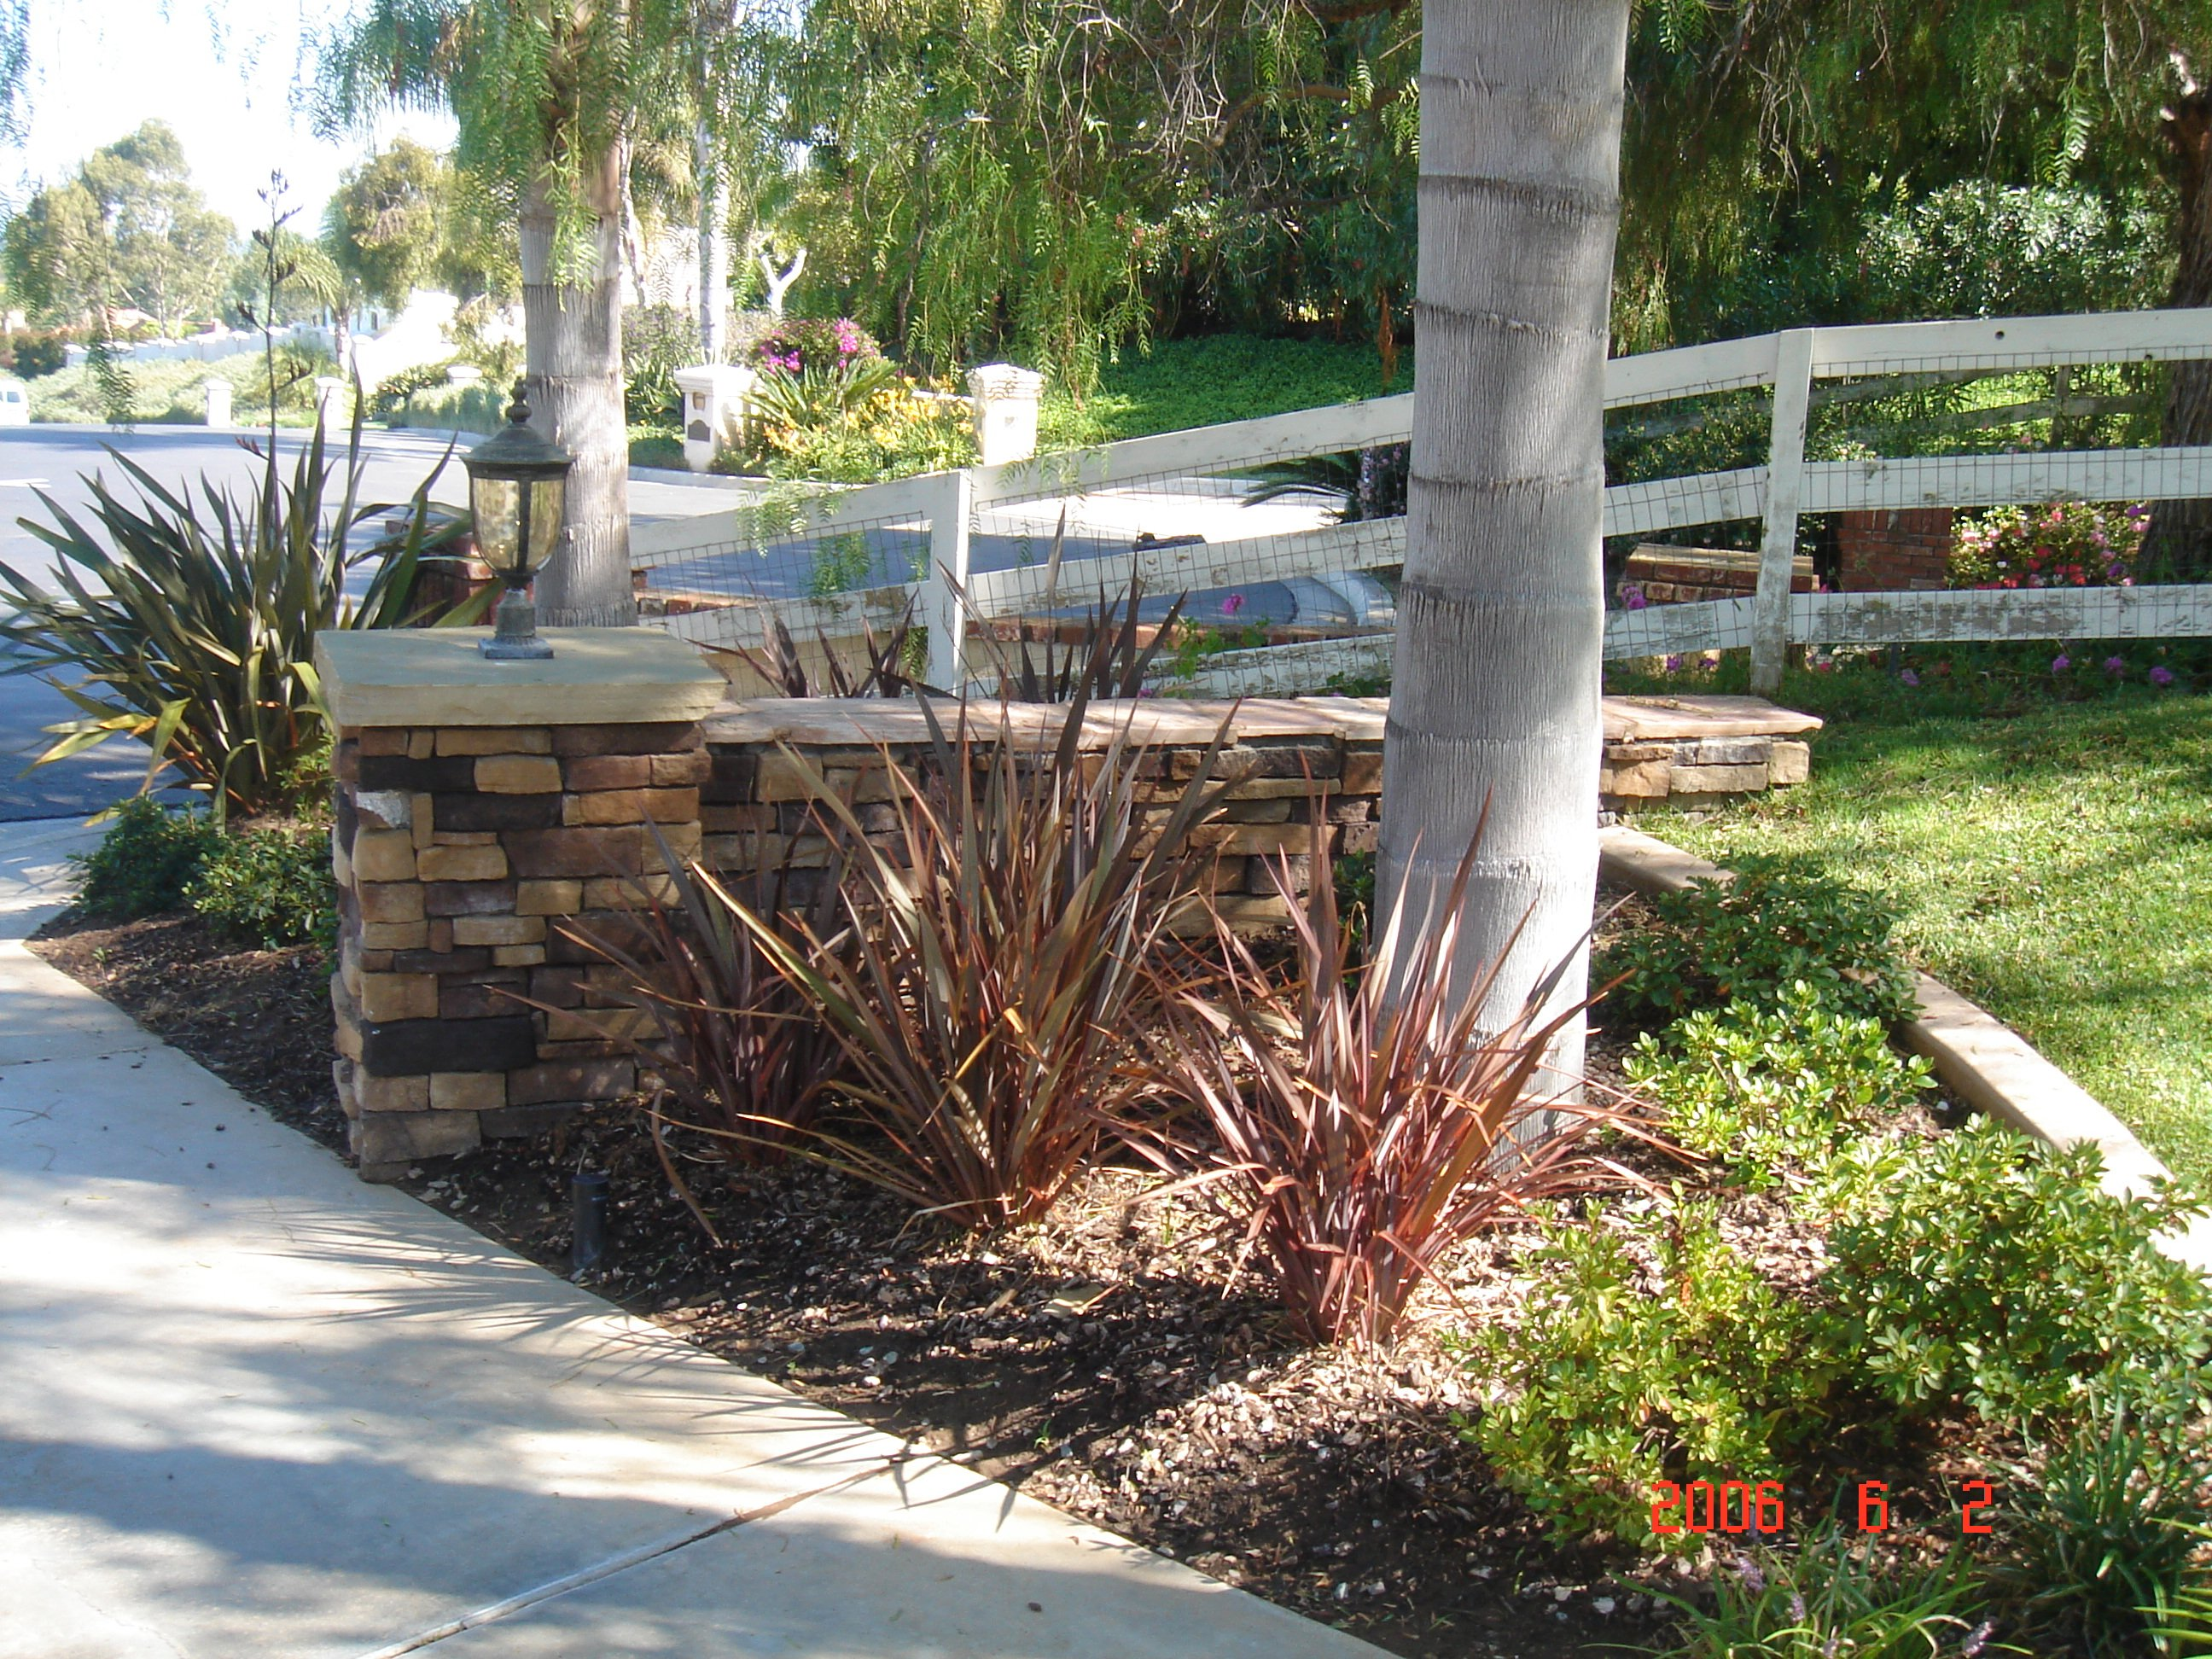 View of outdoor landscaping